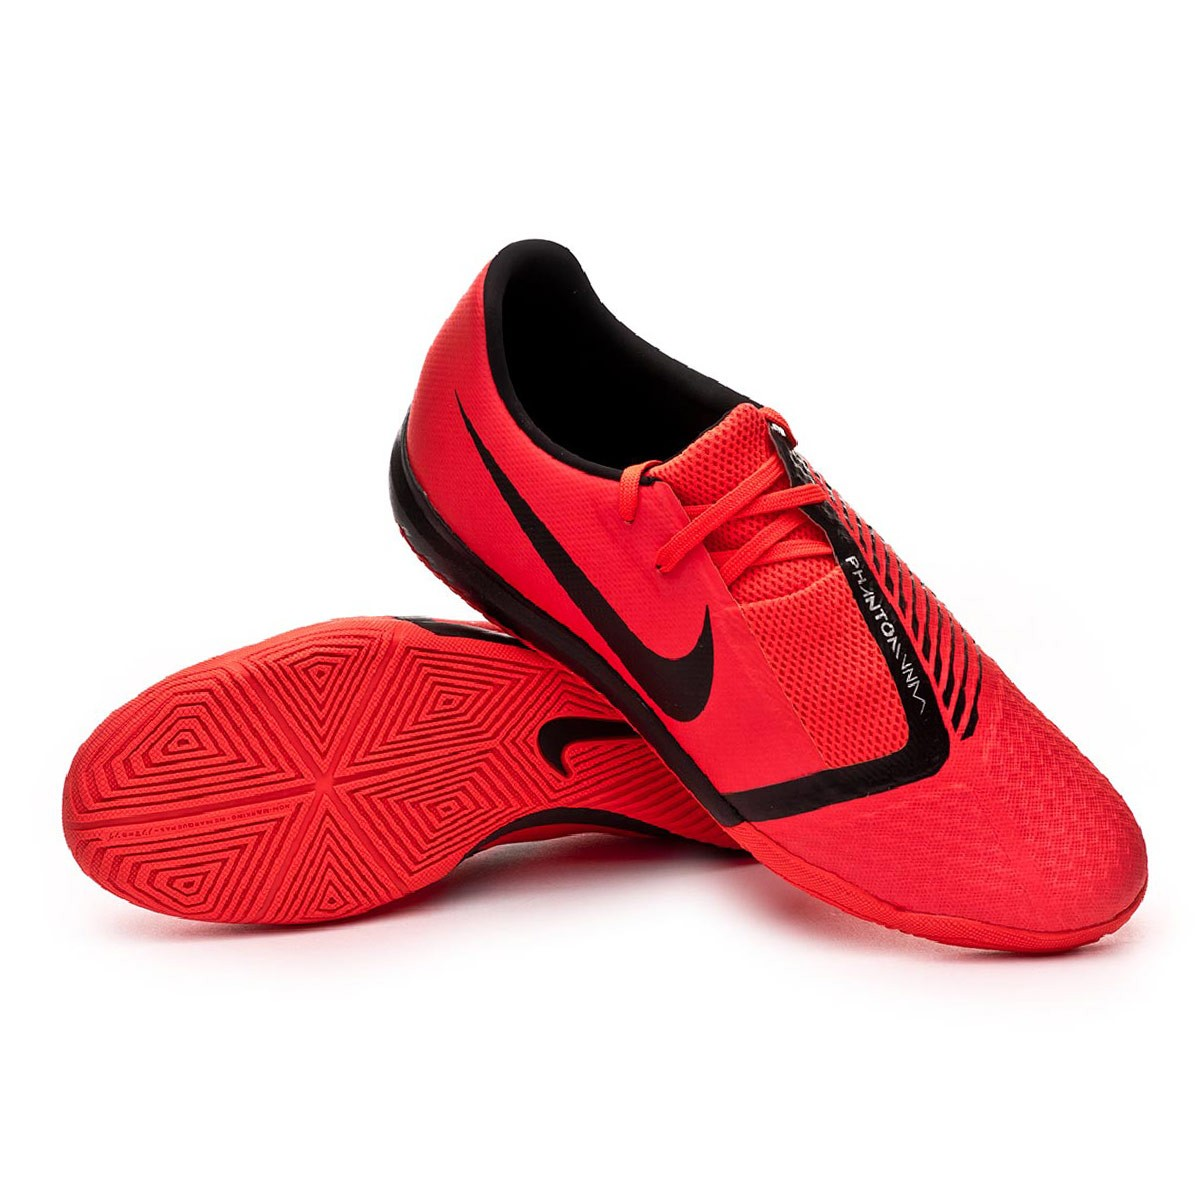 86237715c809a Futsal Boot Nike Phantom Venom Academy IC Bright crimson-Black - Football  store Fútbol Emotion